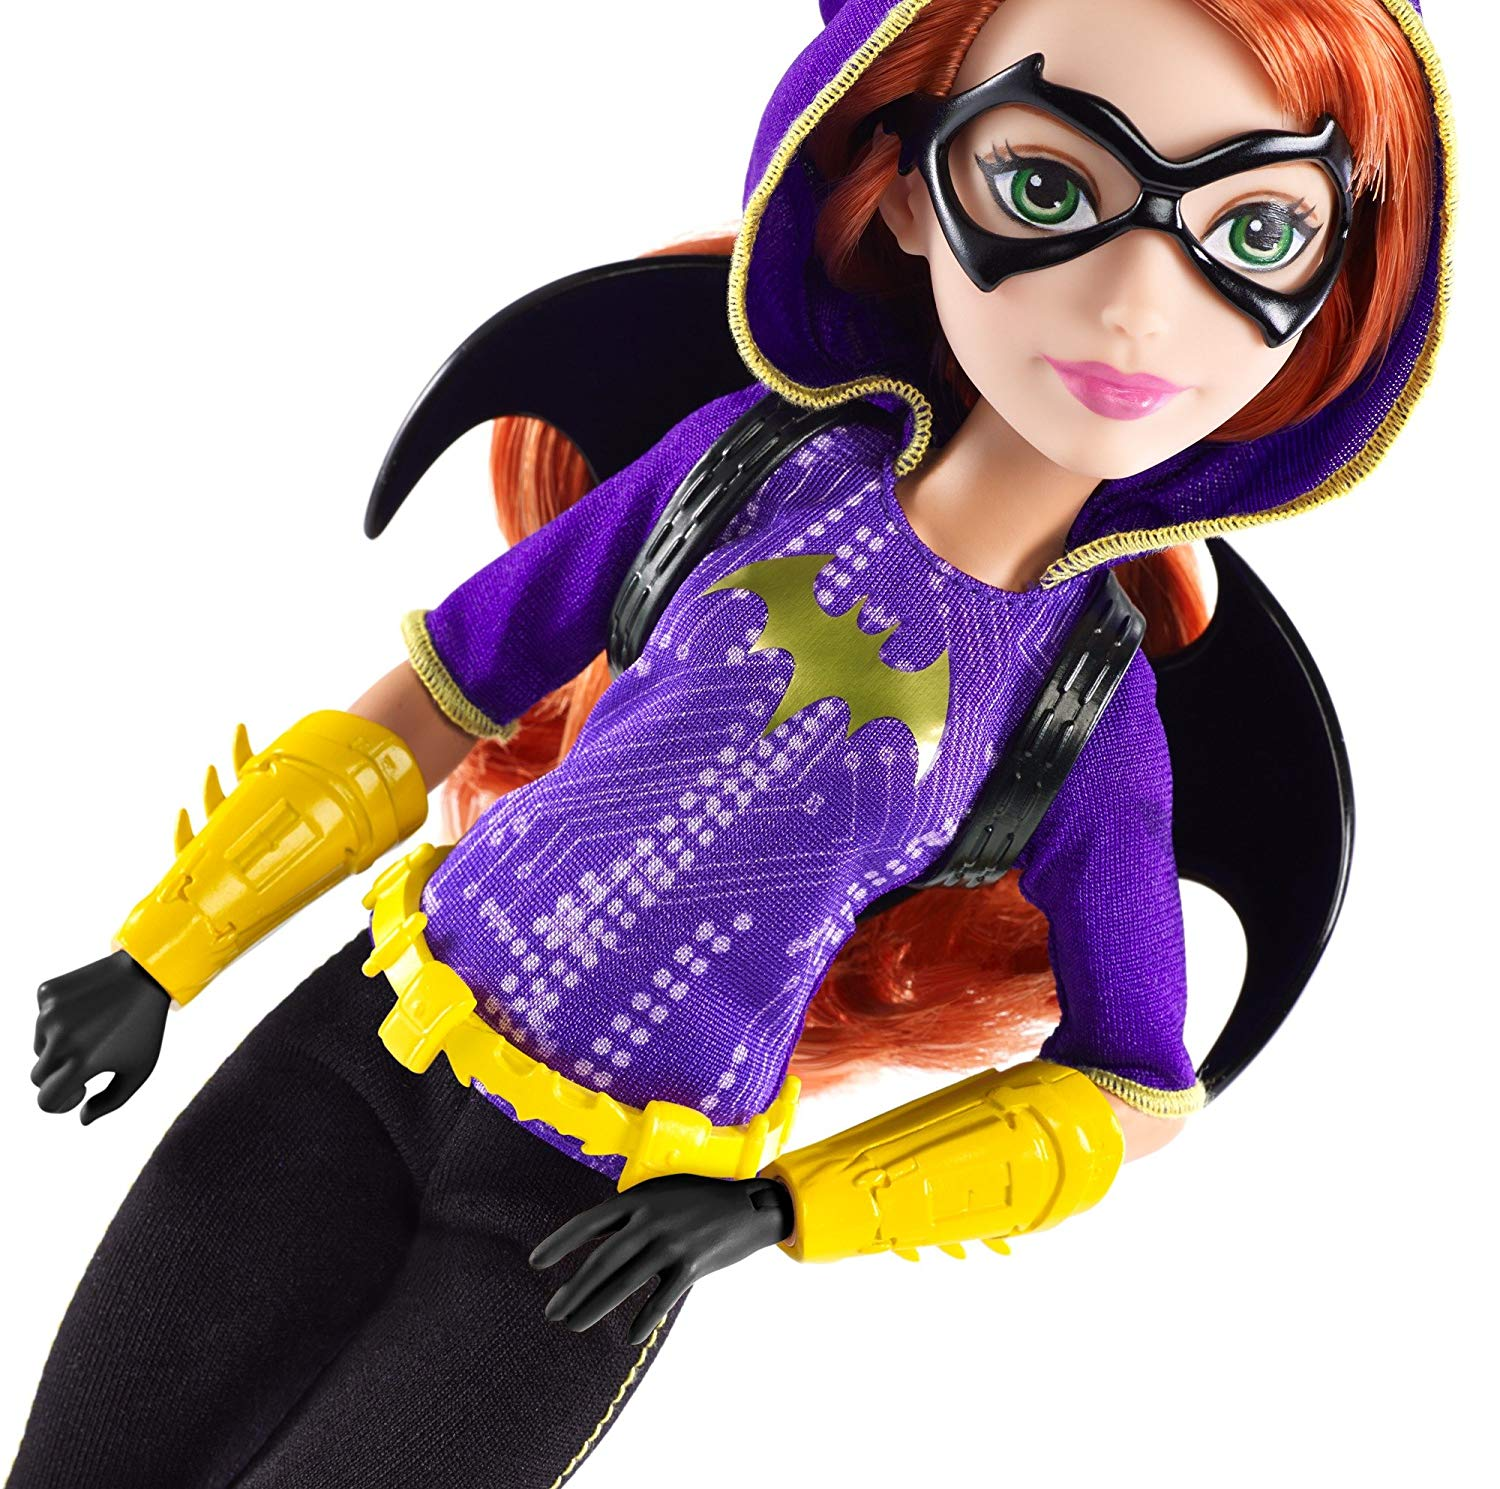 Dc Super Hero Girls- Batgirl- Mattel- DLT61